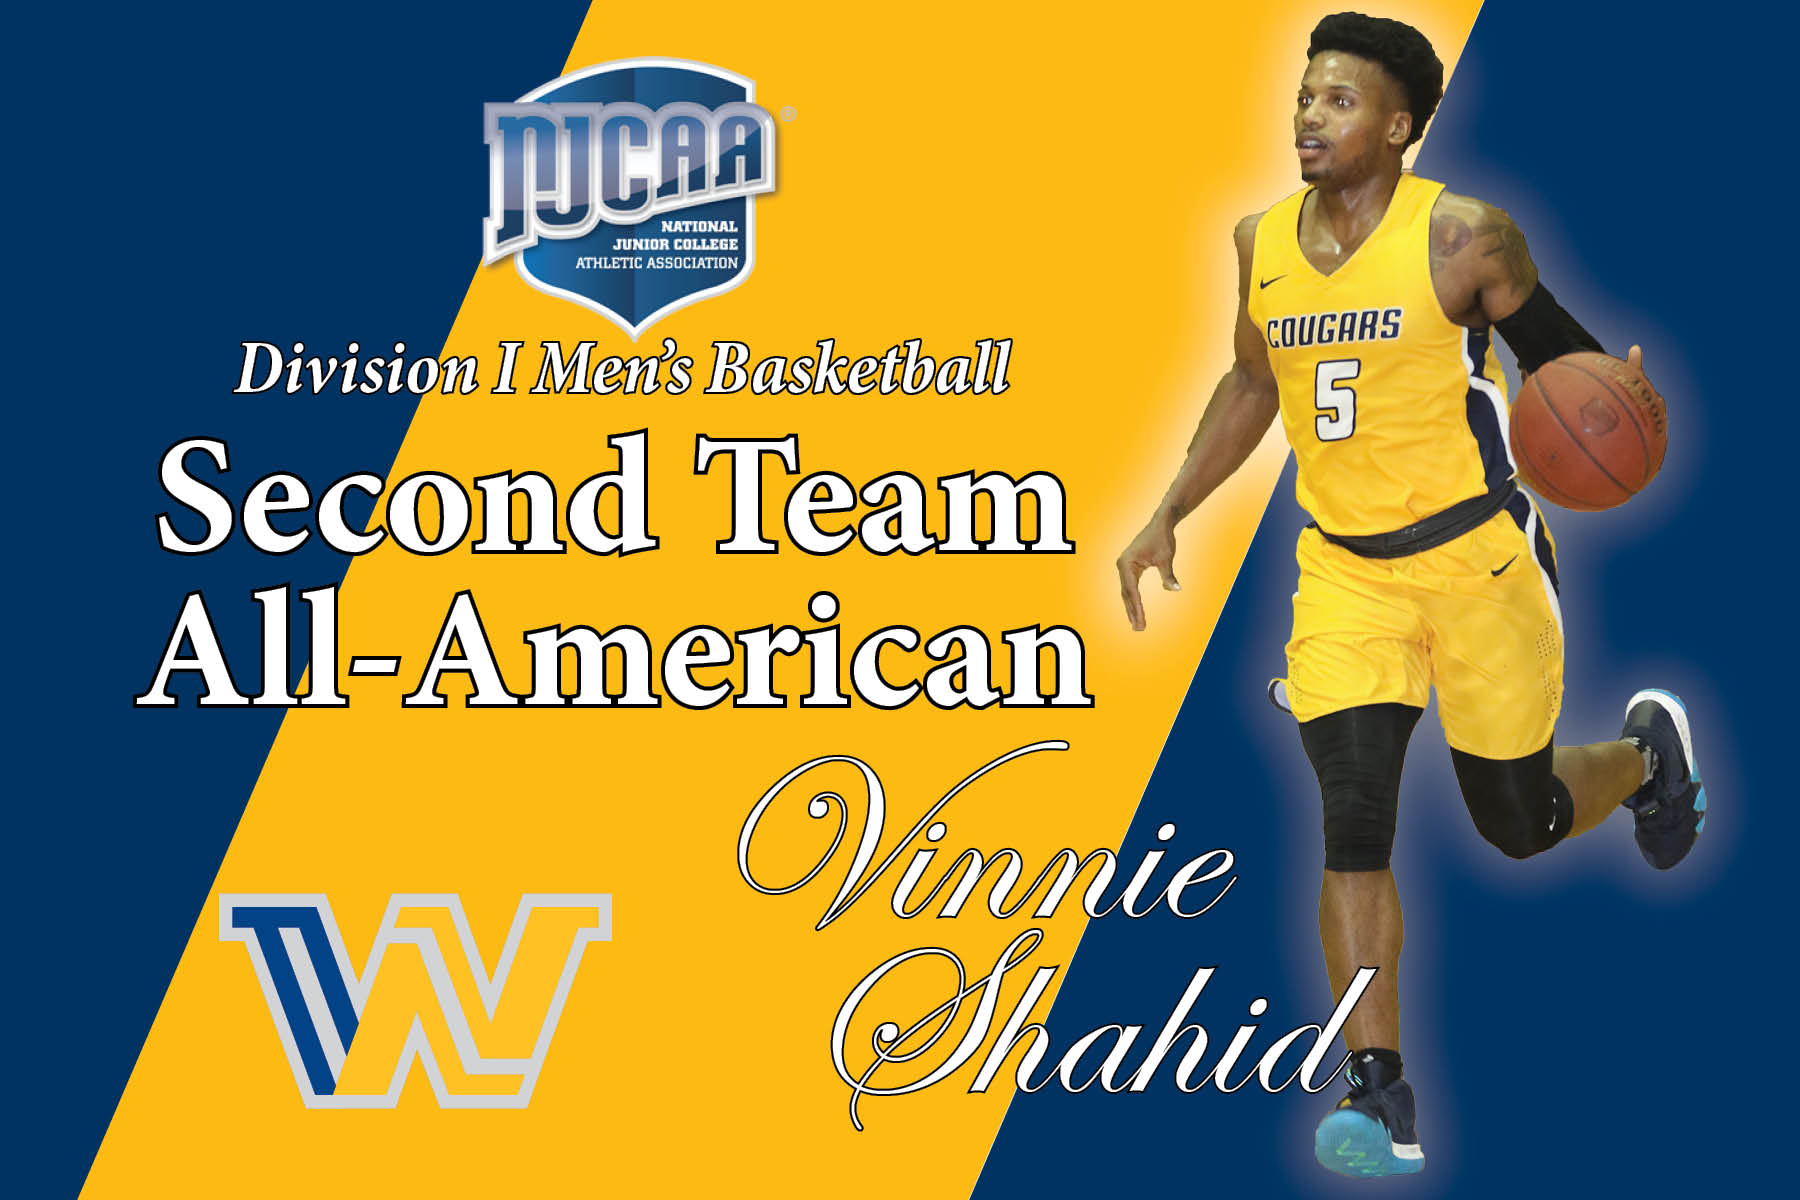 WNCC's Shahid earns NJCAA 2nd team All-American honor